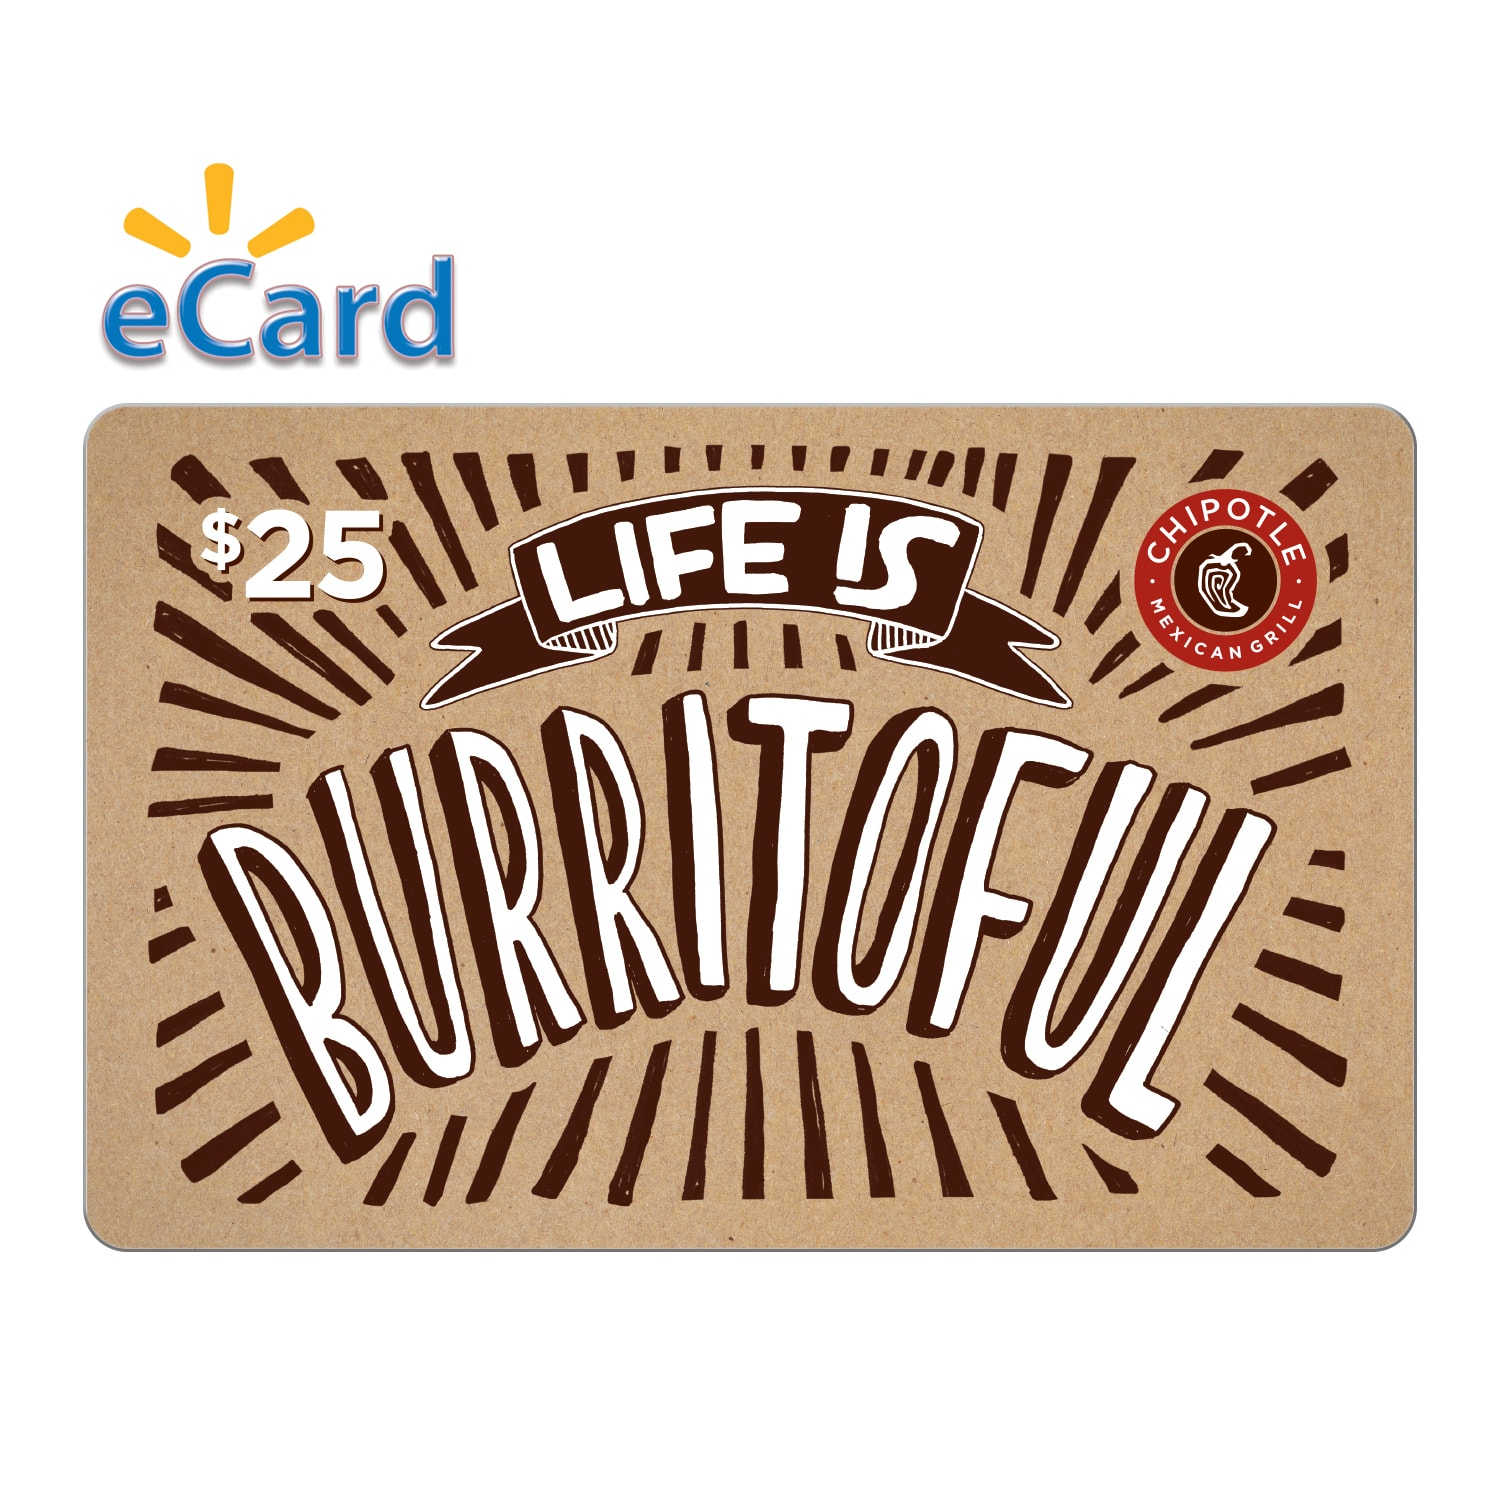 10% off Chipotle GC @ Walmart $22.50 for $25